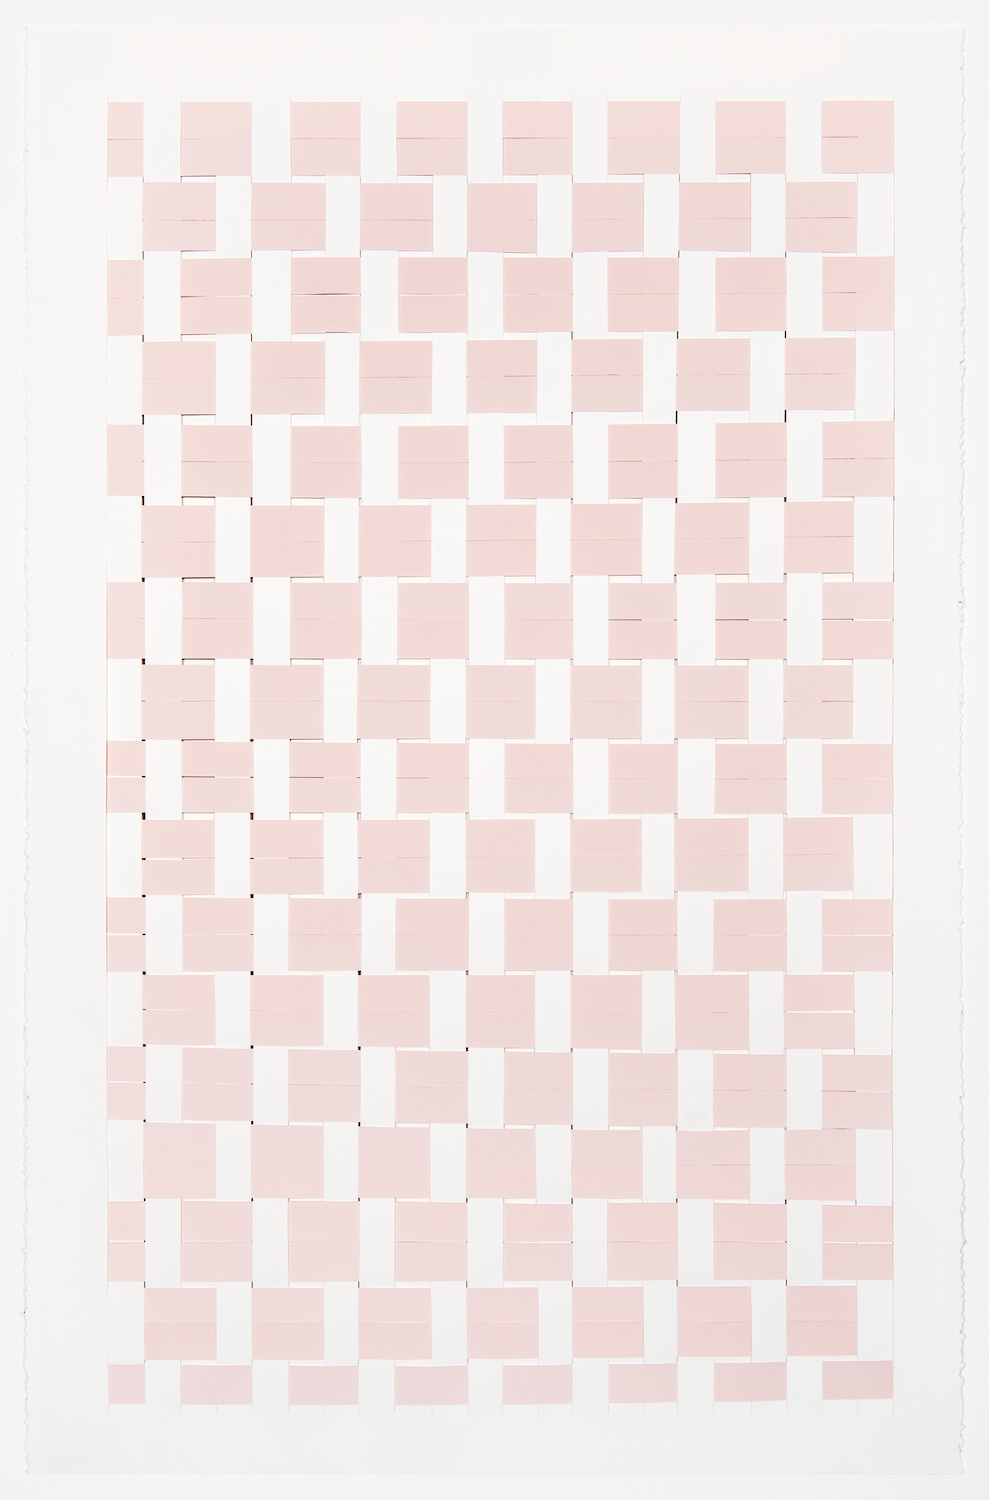 Michelle Graber  Untitled  2013 Paper and Color-aid 40h x 26w in MGrab308